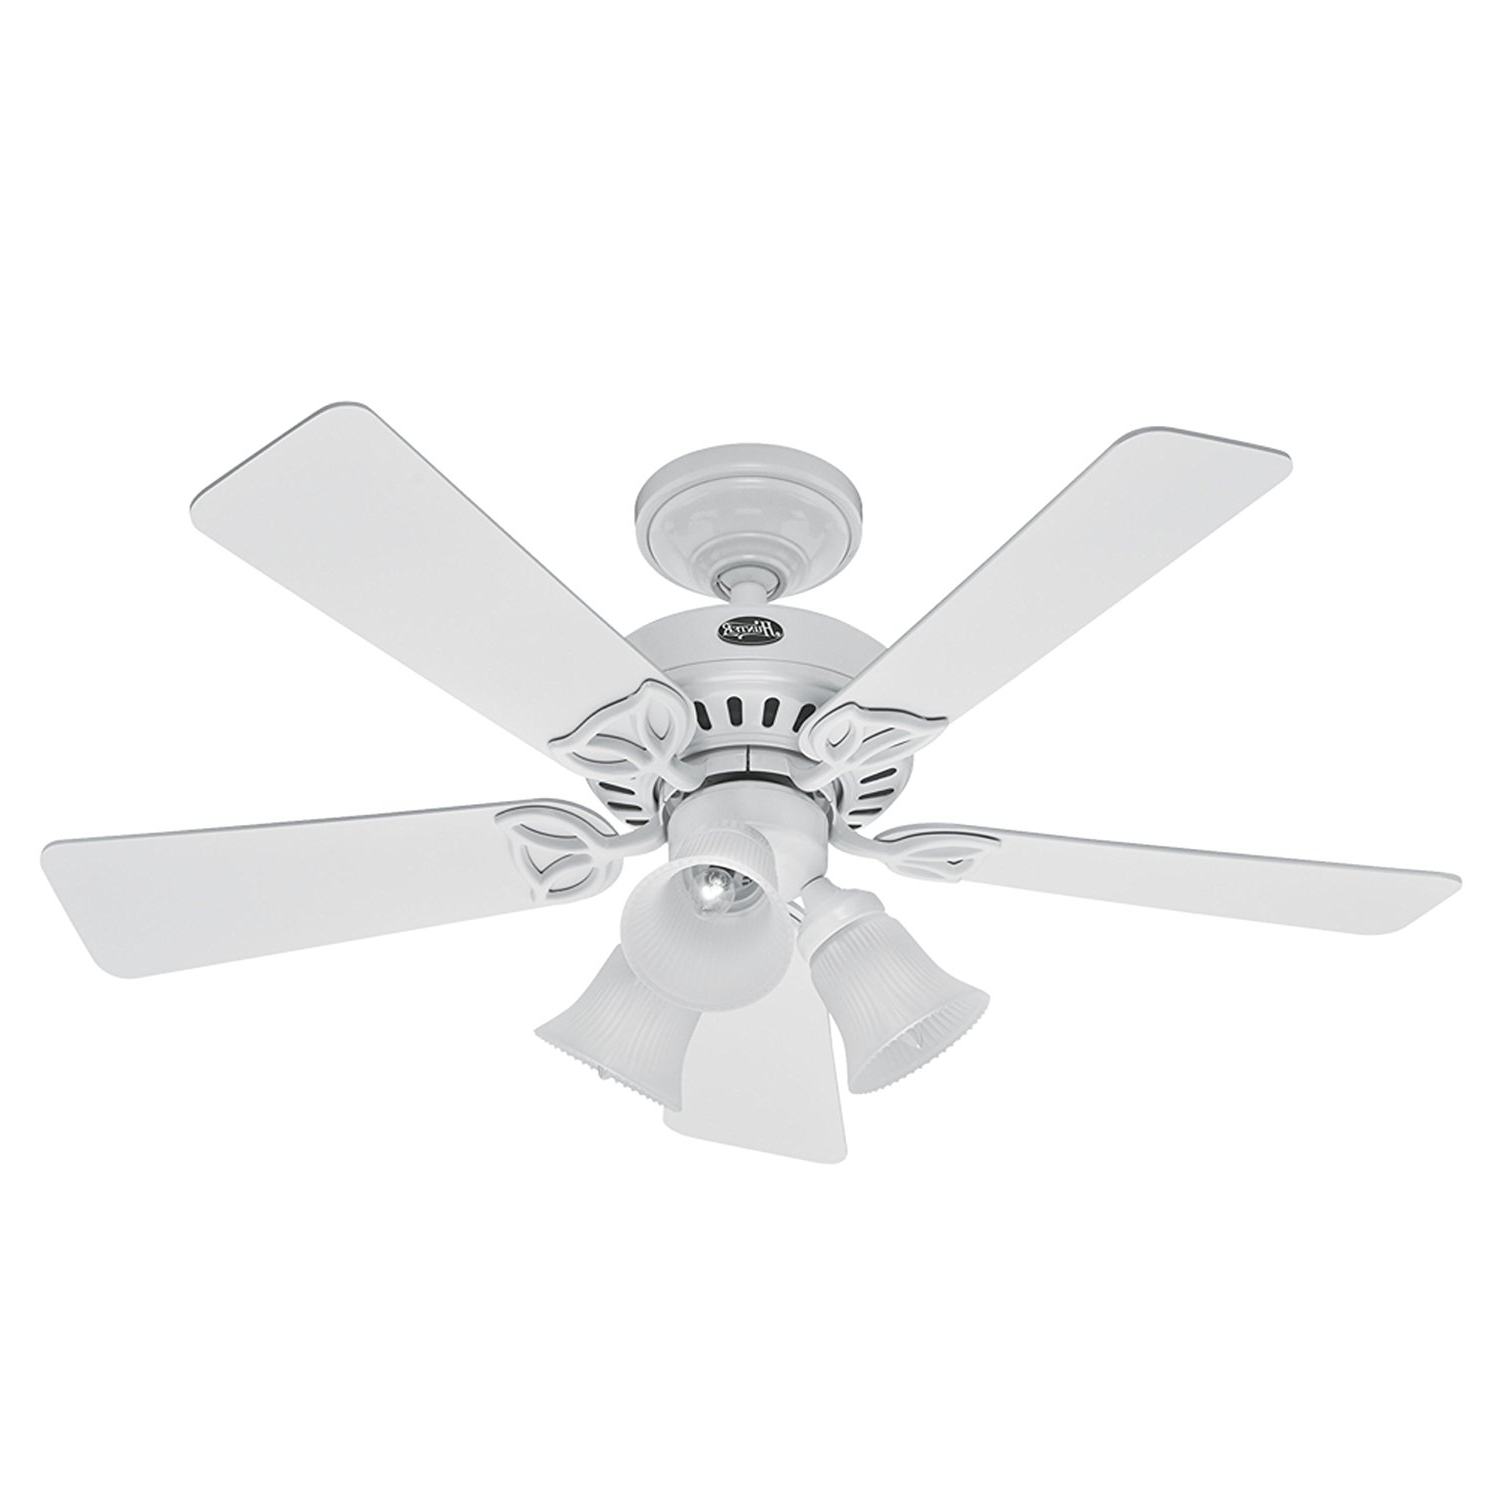 Ceiling Fan: Appealing Hunter Ceiling Fans Ideas Ceiling Fans Regarding Most Up To Date Hunter Outdoor Ceiling Fans With White Lights (View 20 of 20)